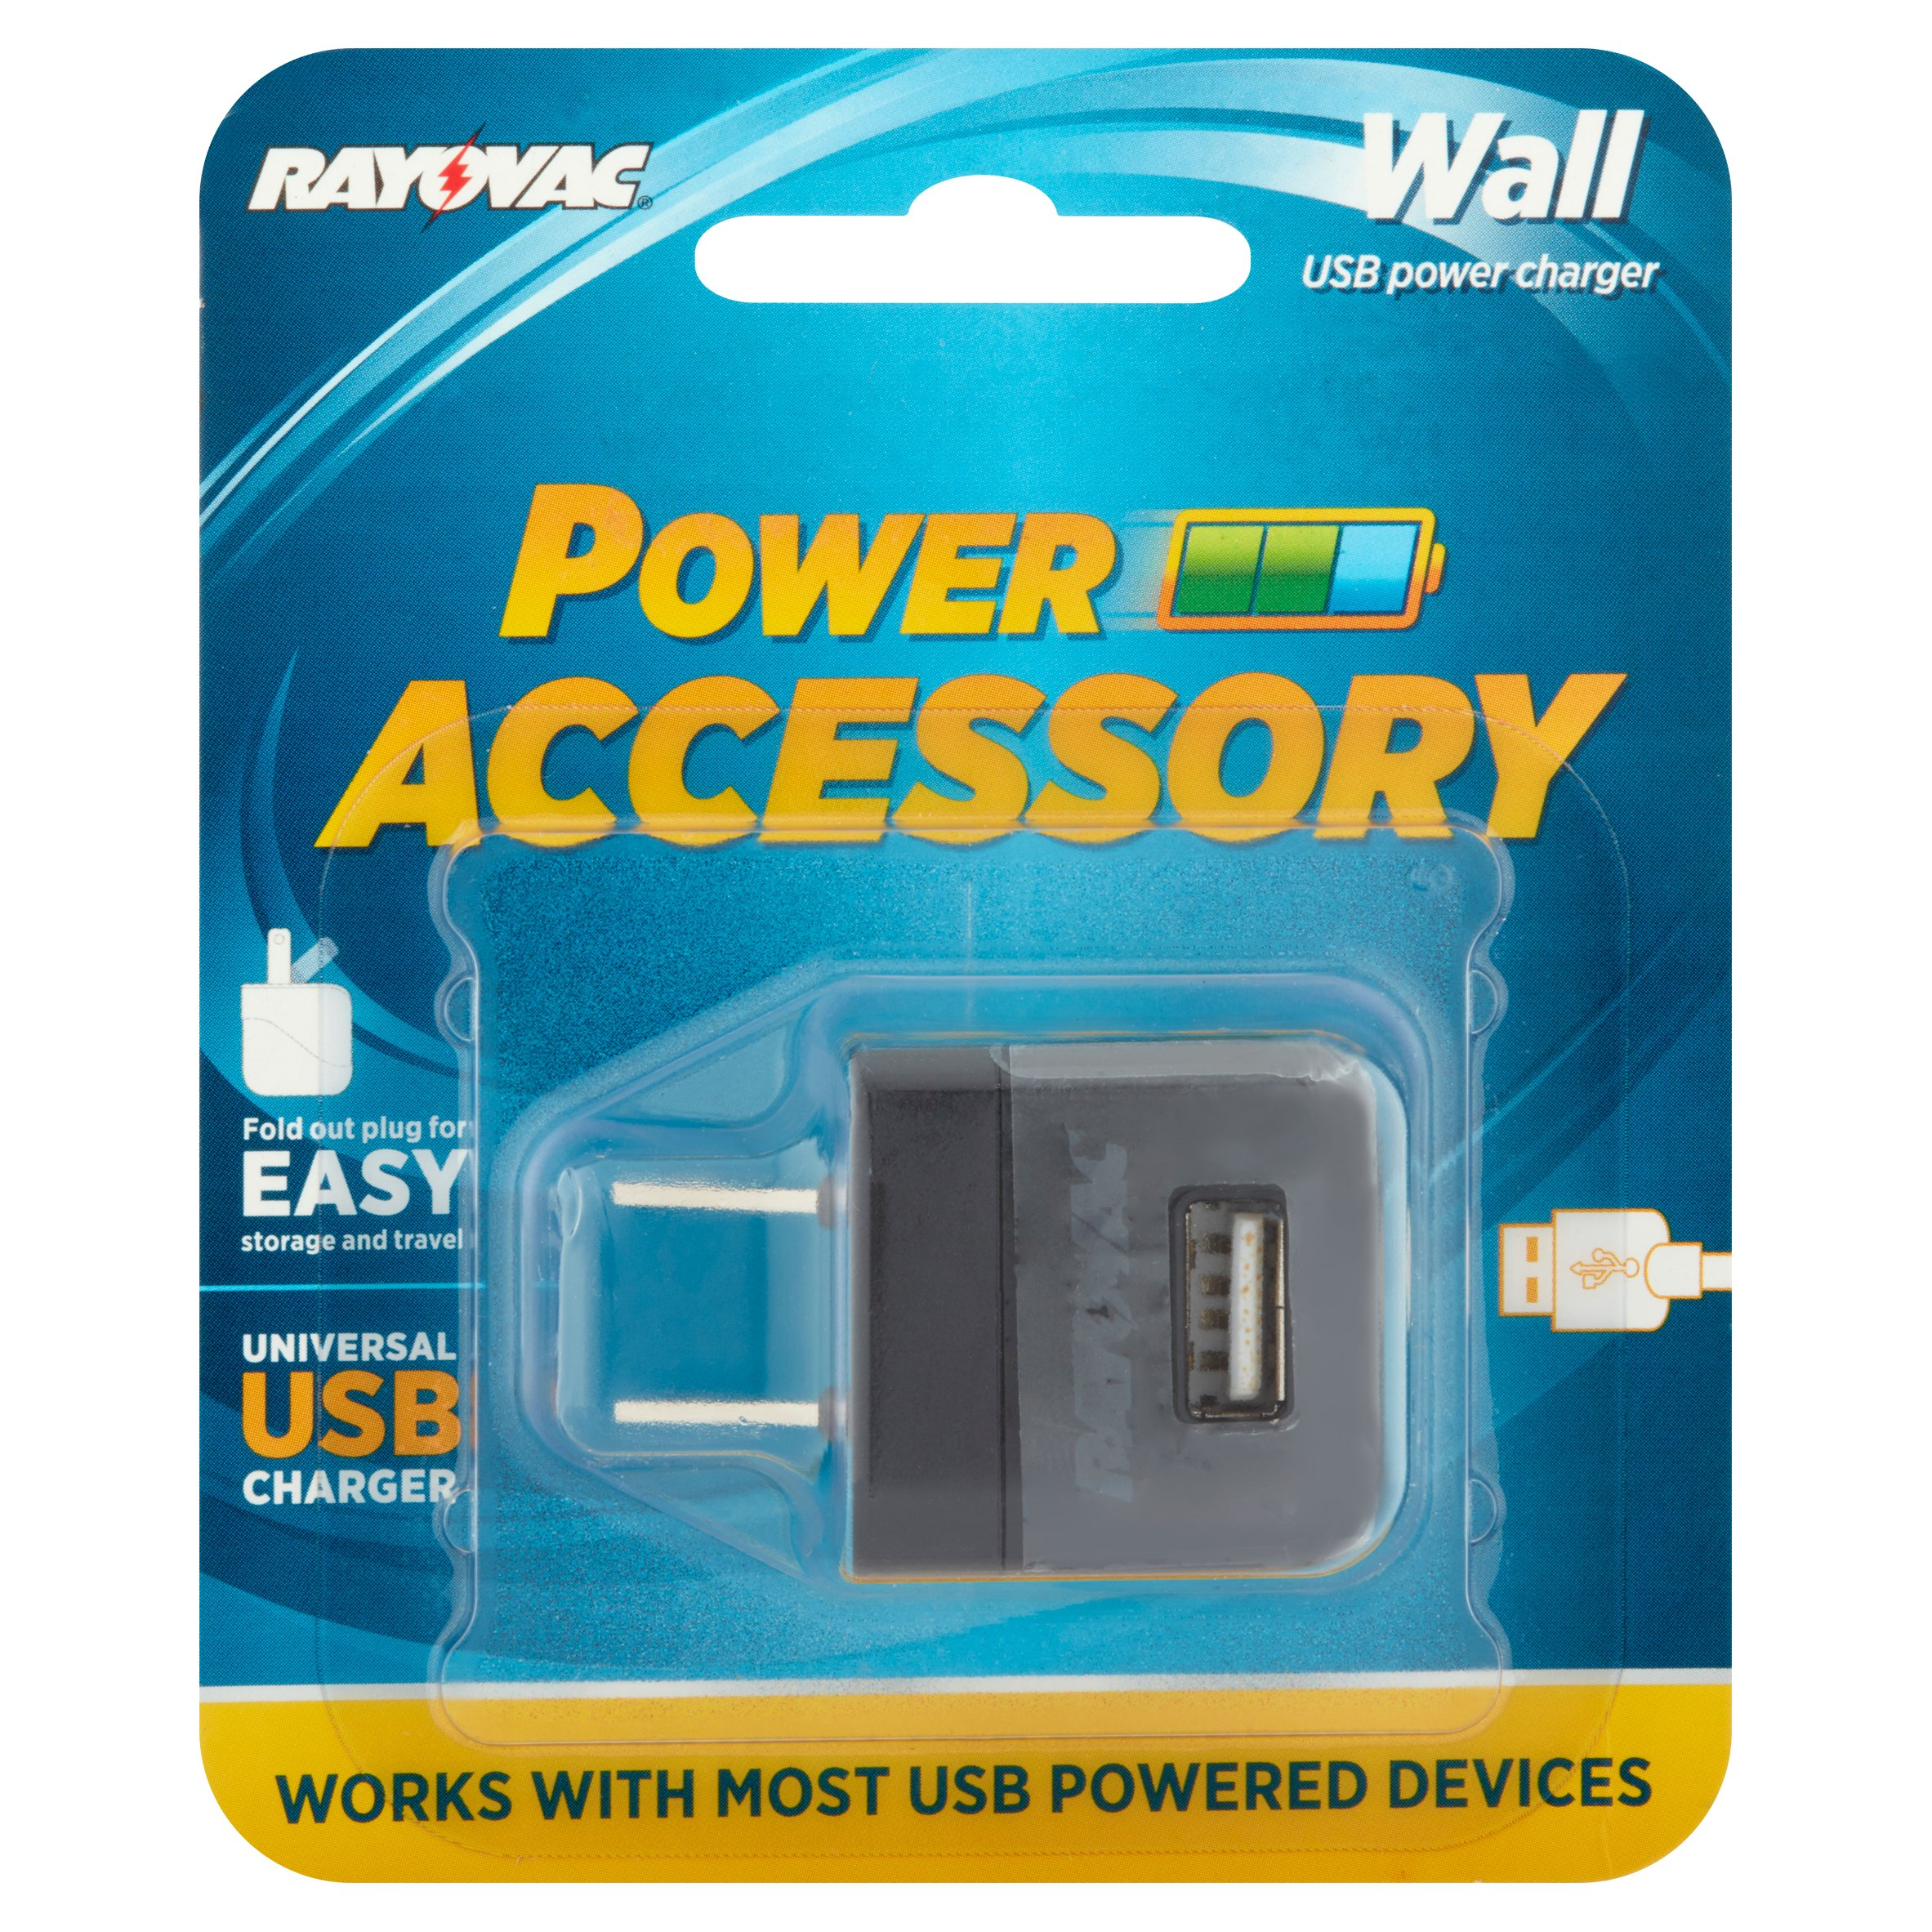 Rayovac Power Accessory Universal Wall USB Power Charger